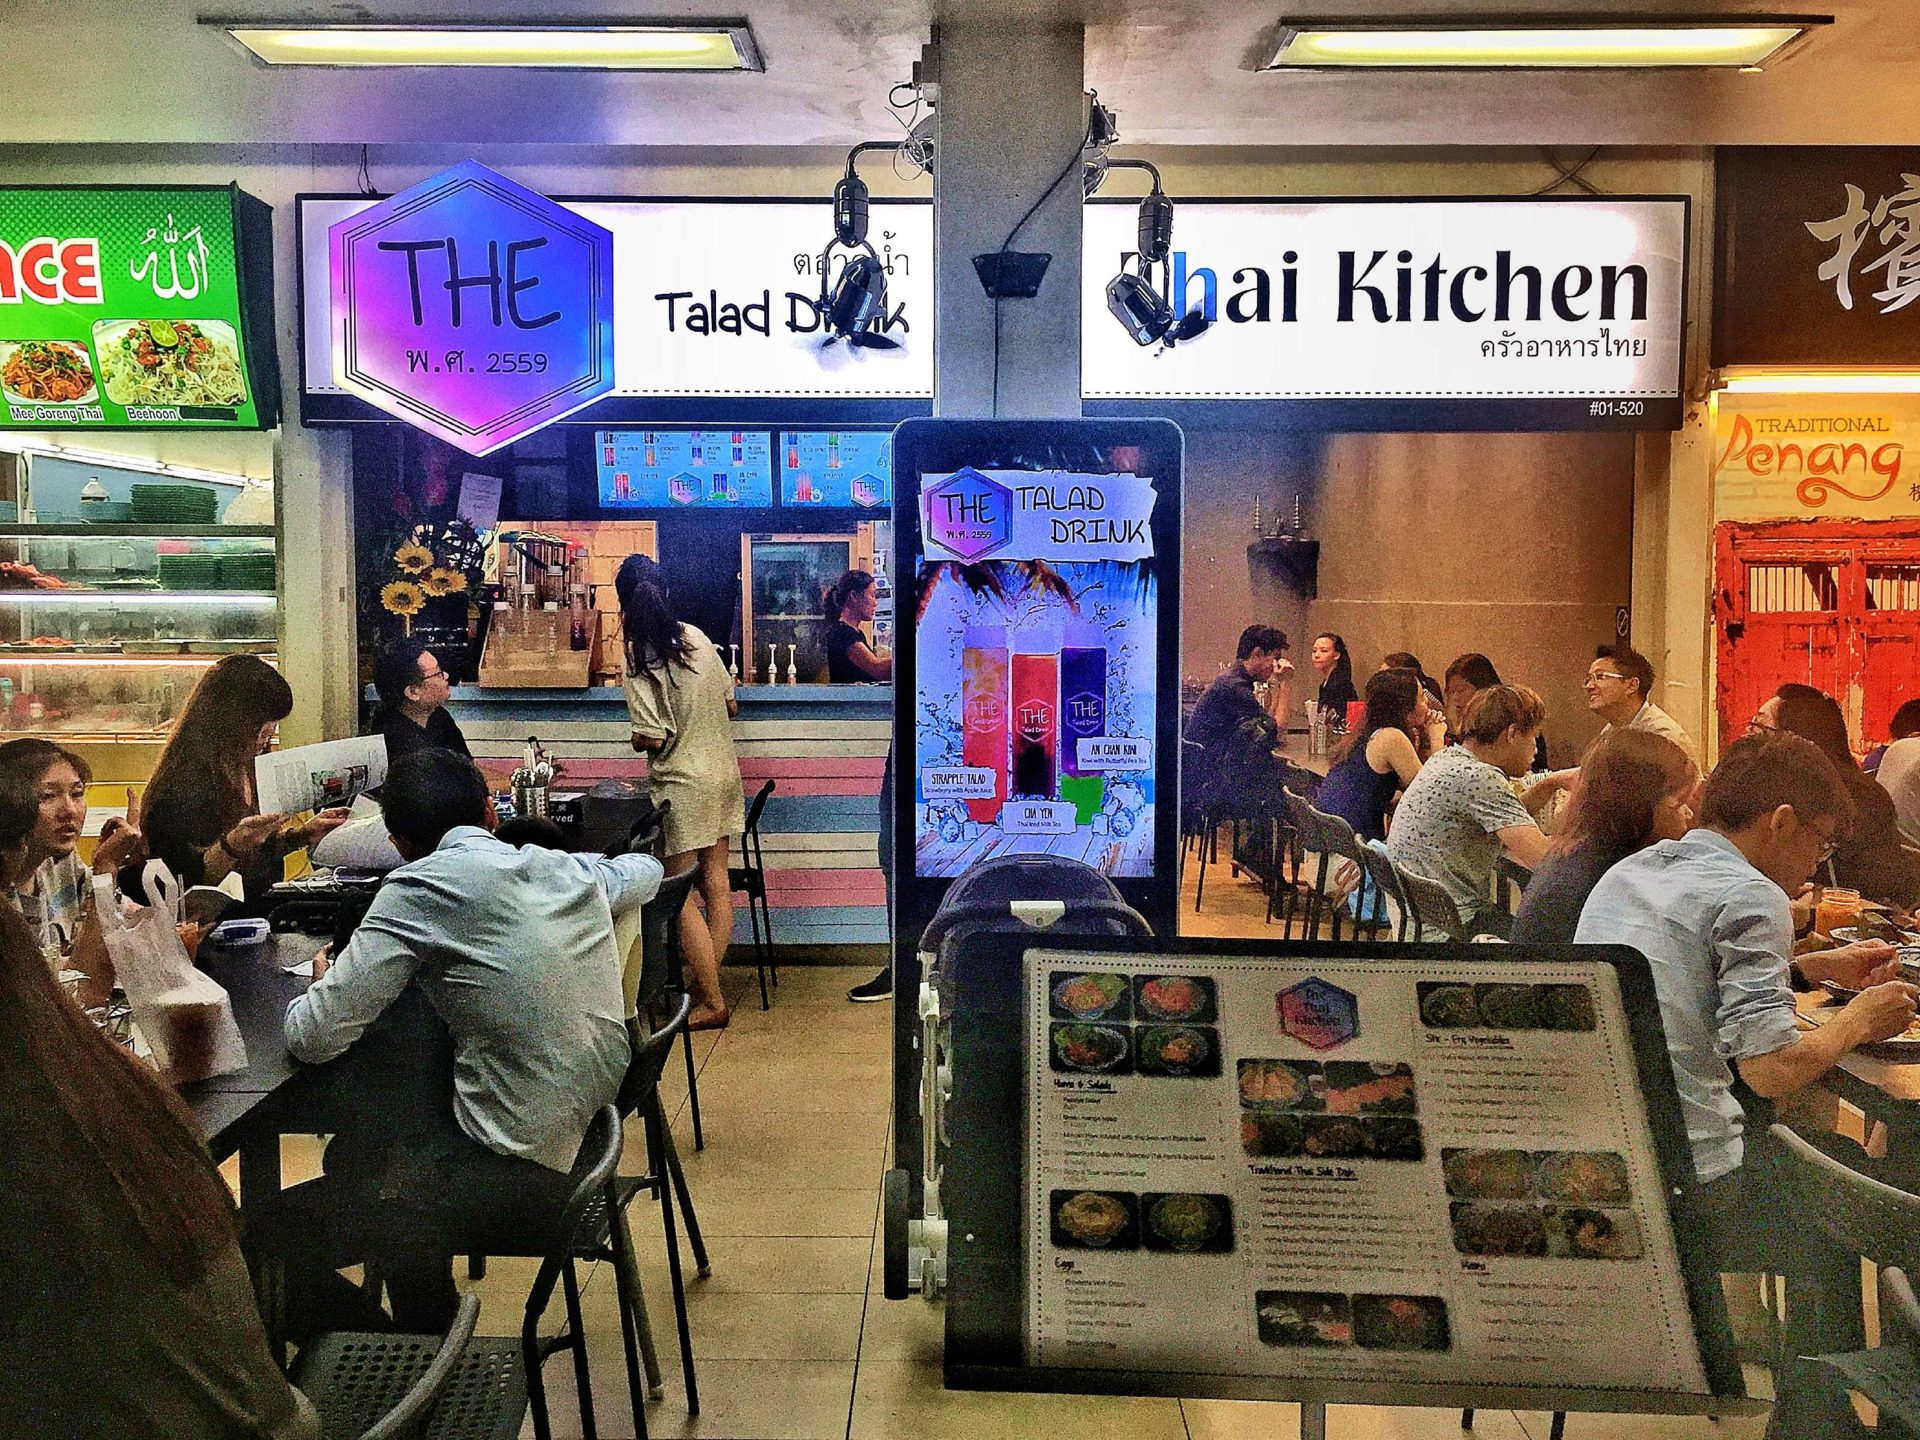 THE Talad Drink and Thai Kitchen - Toa Payoh Shop